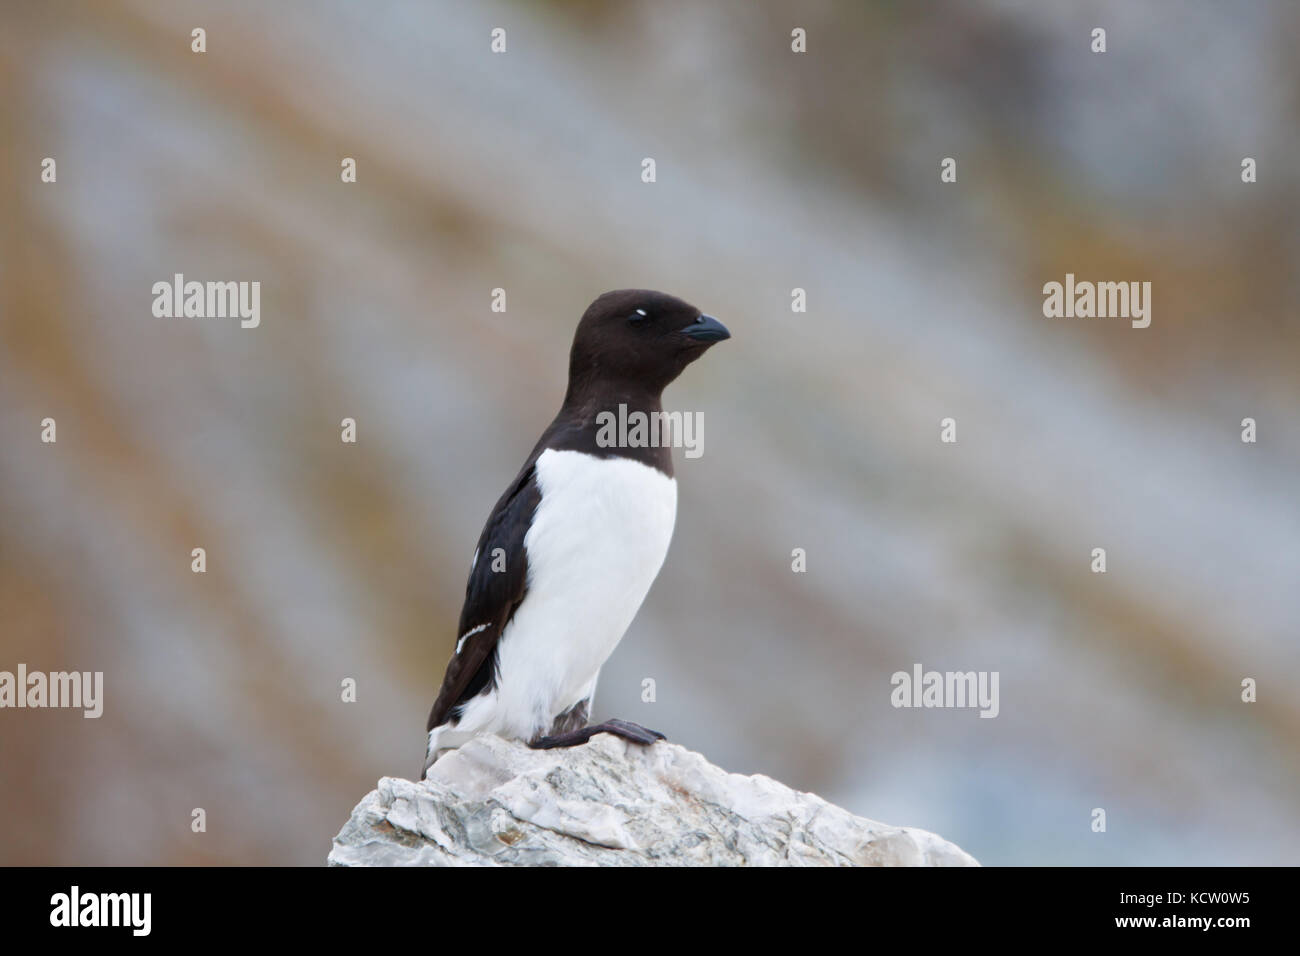 Little Auk or Dovekie (Alle alle) perching on a rock Stock Photo